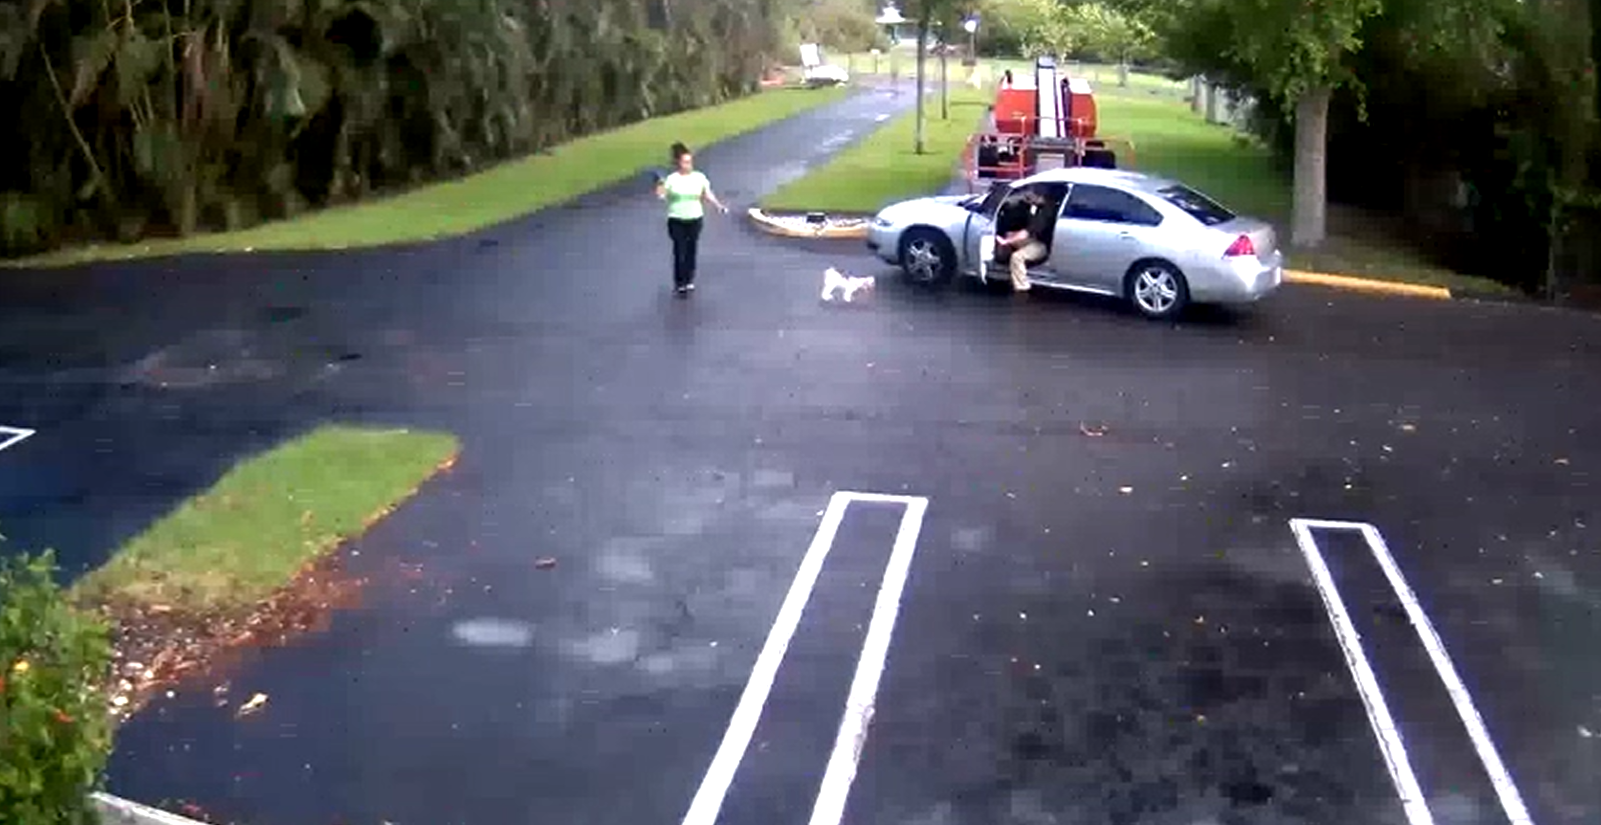 Video shows shooting involving PBSO deputy and ex-girlfriend. (WPEC)